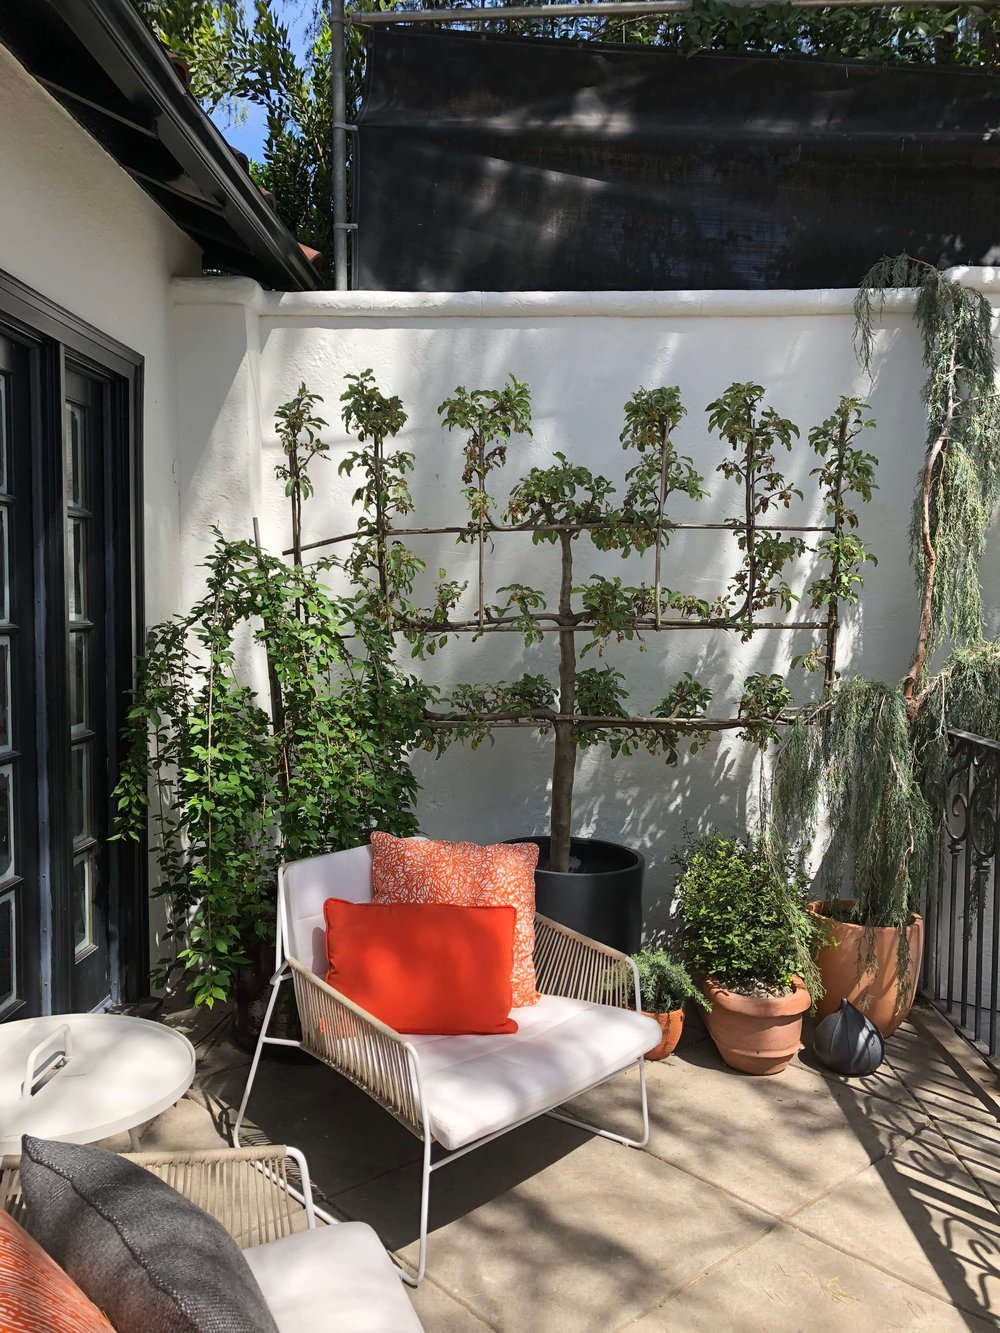 Guest house front porch with espalier tree, plants and lounge chair, Pasadena Showcase House, Designer: L2 Interiors #patio #frontporch #espalier #garden